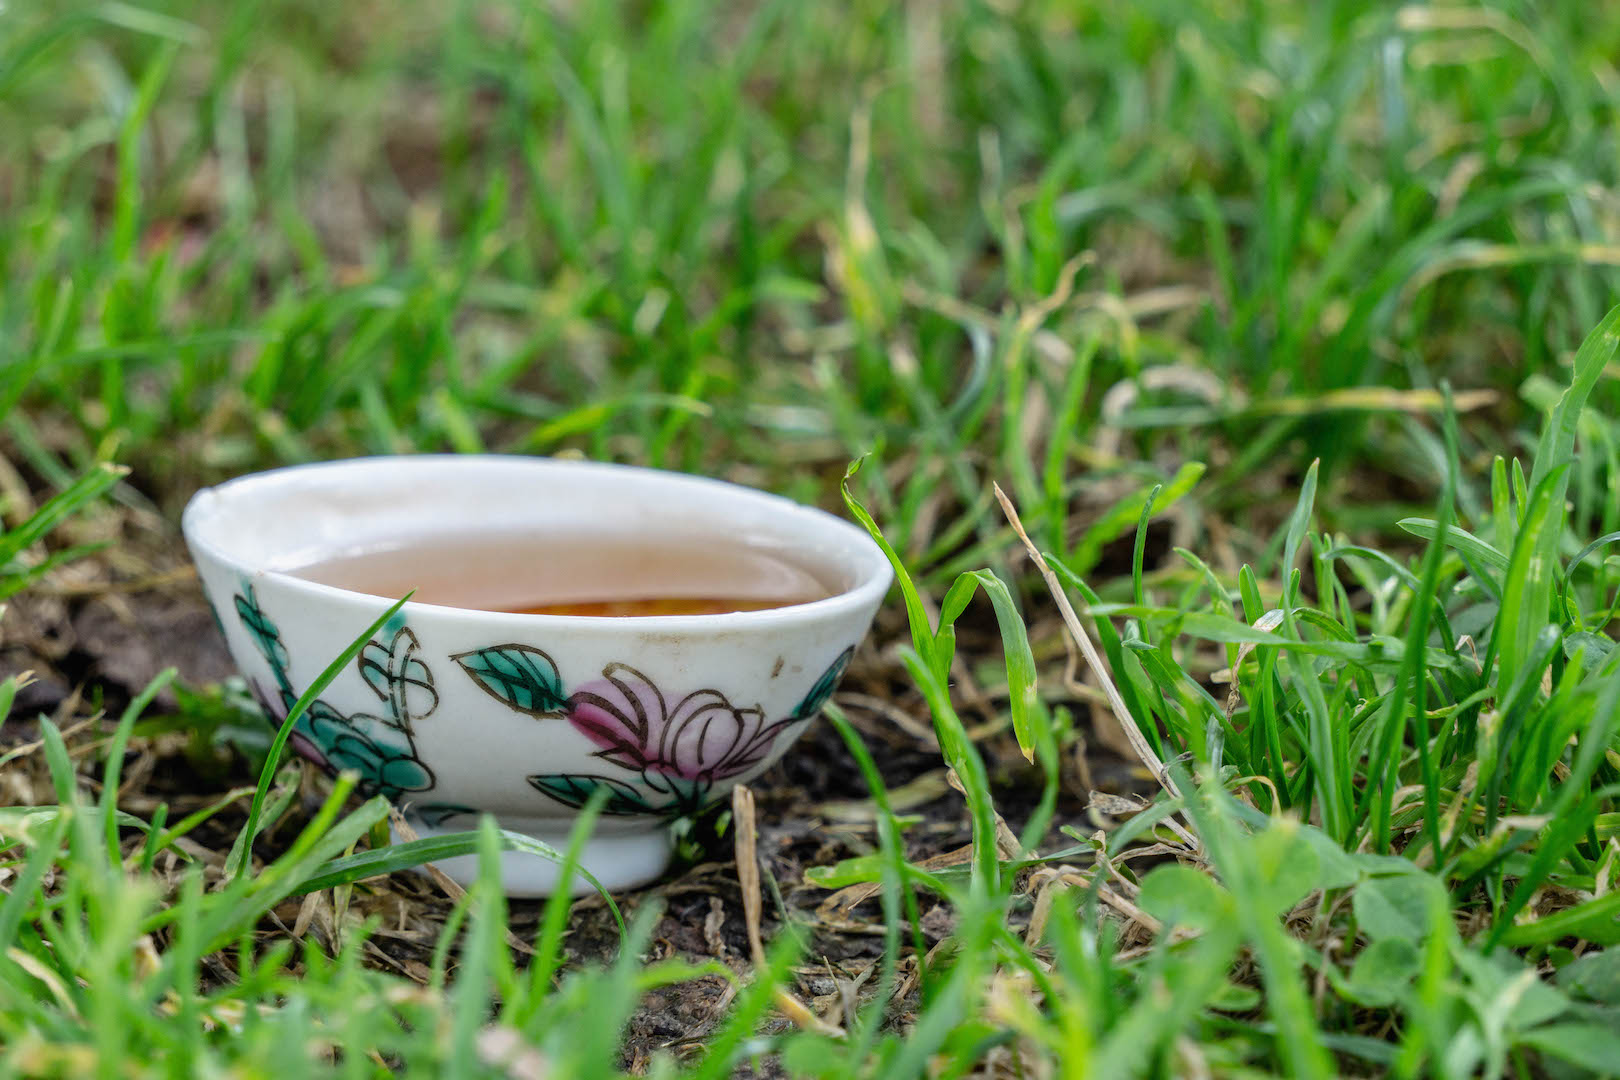 Tea of the month, Trinity.  A photo by Dalton Johnson Media,  www.daltonjohnsonmedia.com  or  @daltonjohnsonmedia